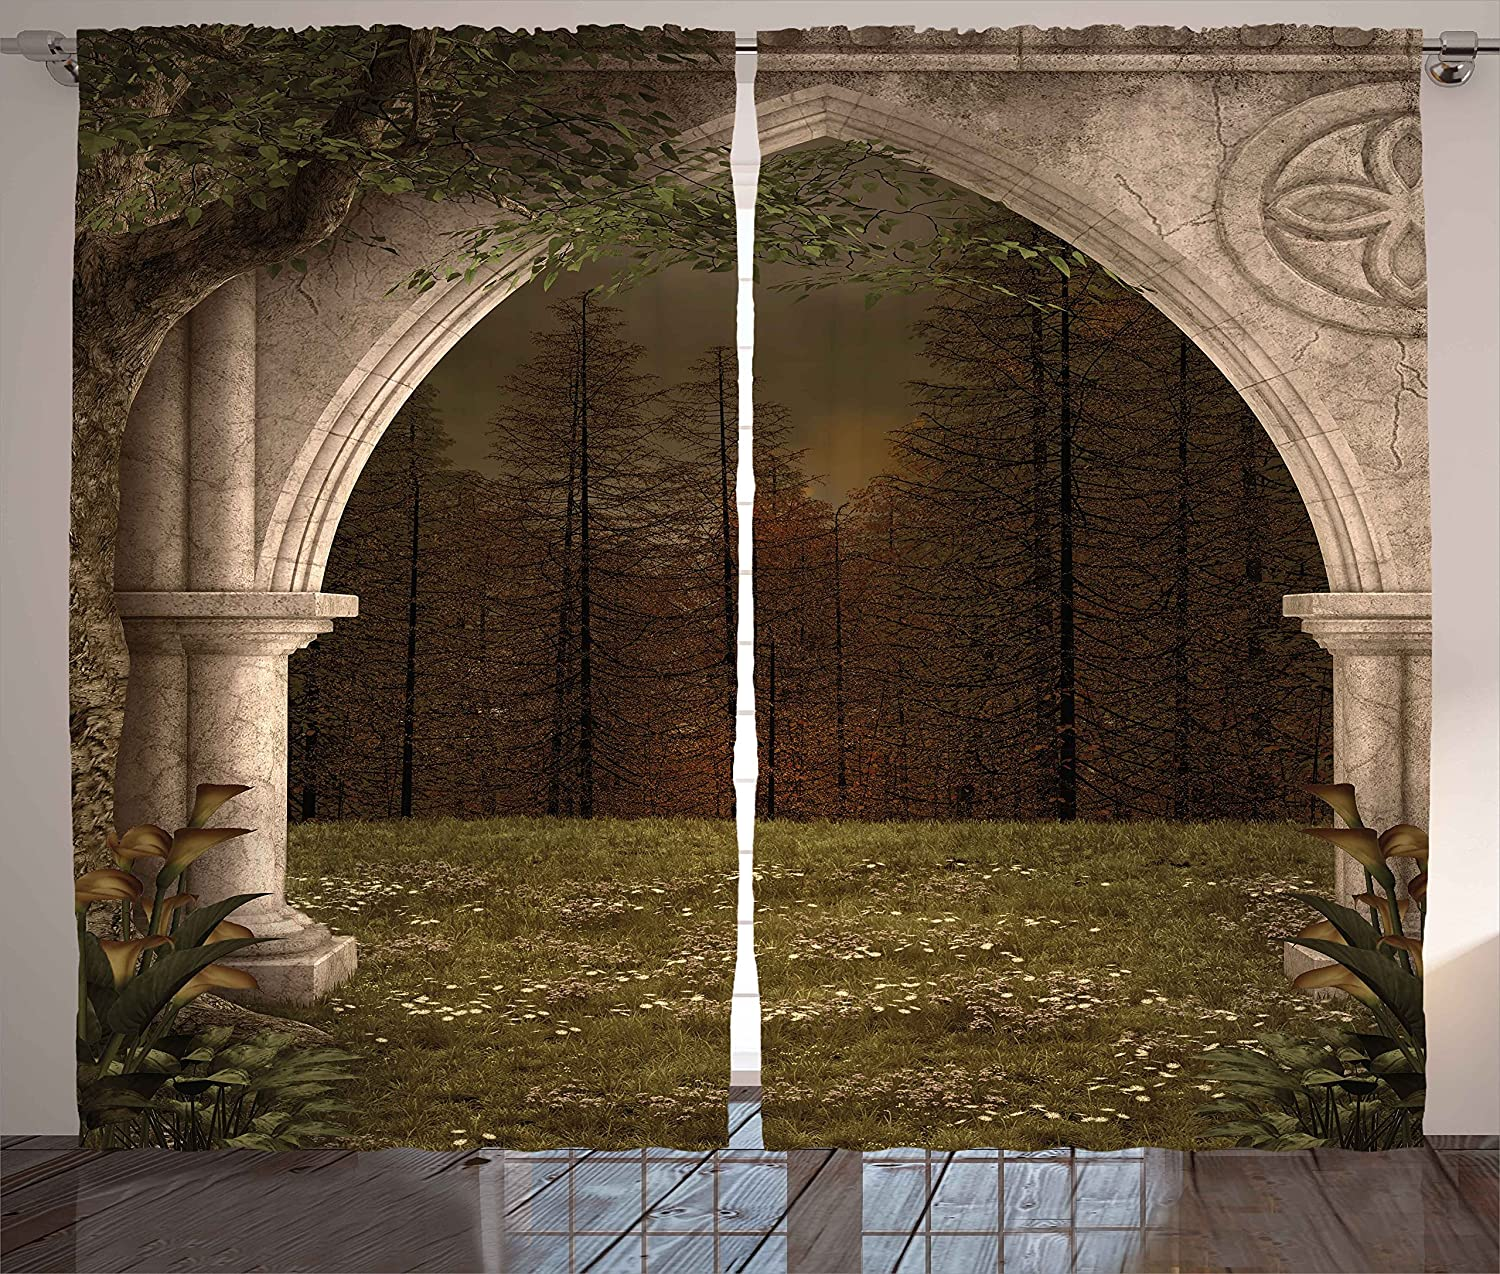 Ambesonne Gothic Decor Curtains, Old Retro Arch in Garden Renaissance Meadow Forest Dark Scary Design Image, Living Room Bedroom Window Drapes 2 Panel Set, 108 W X 84 L Inches, Green Beige